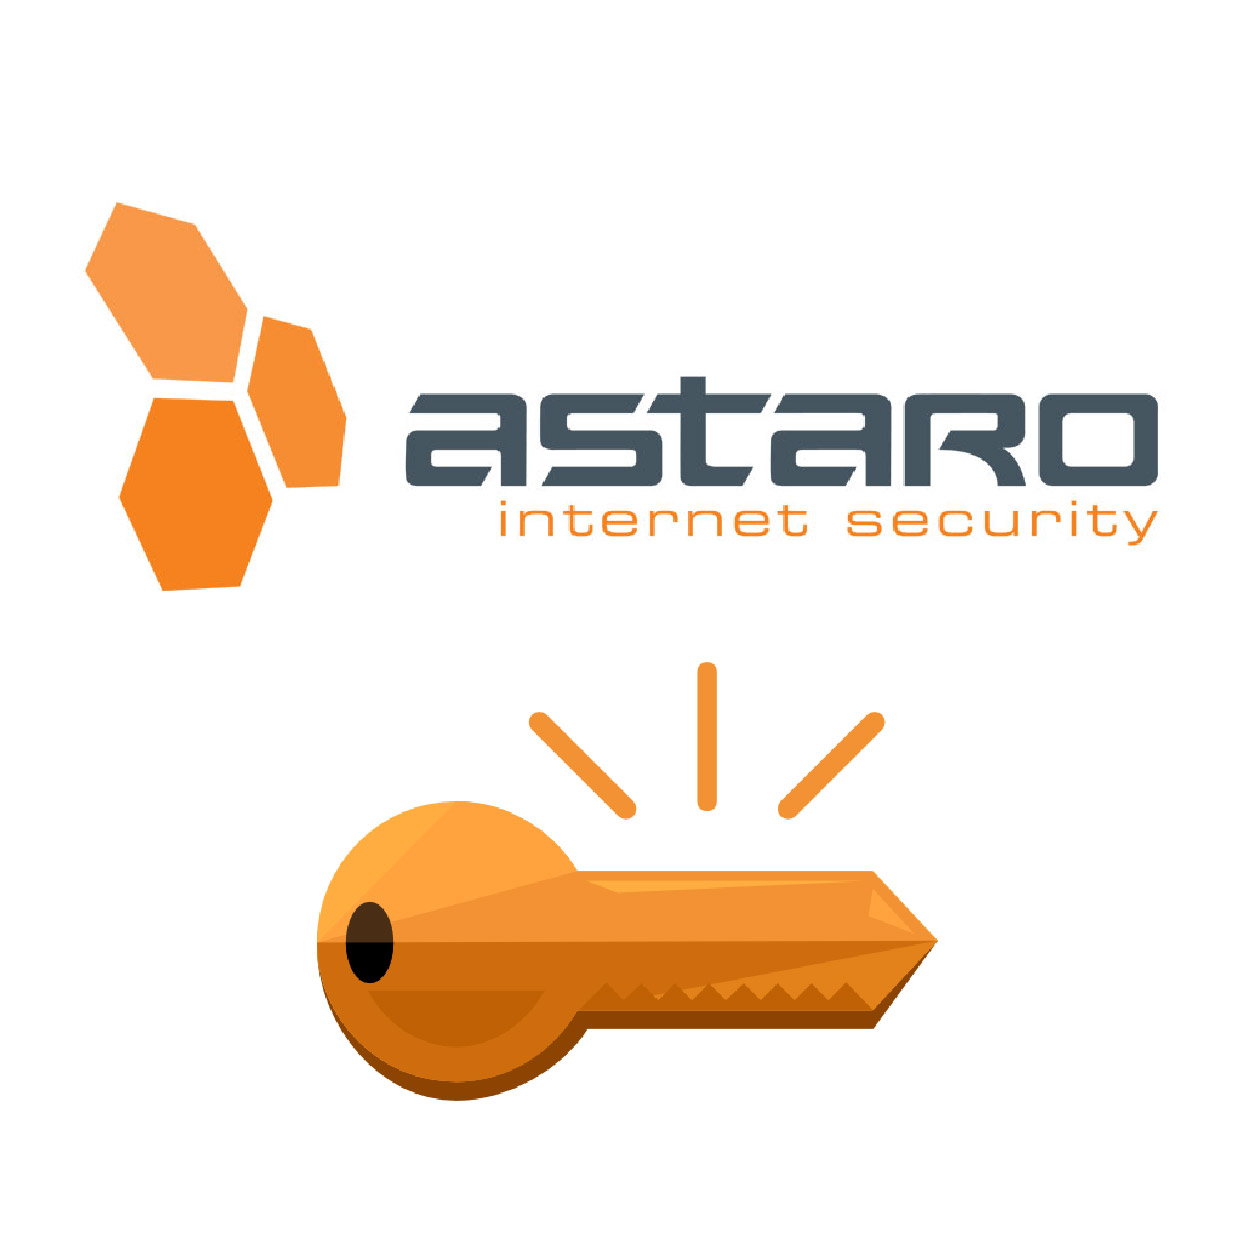 Astaro - Subscription Activation code for AWG 2000 with 1 Yr Mail  Including 1 Yr Gold Support ,Firewall